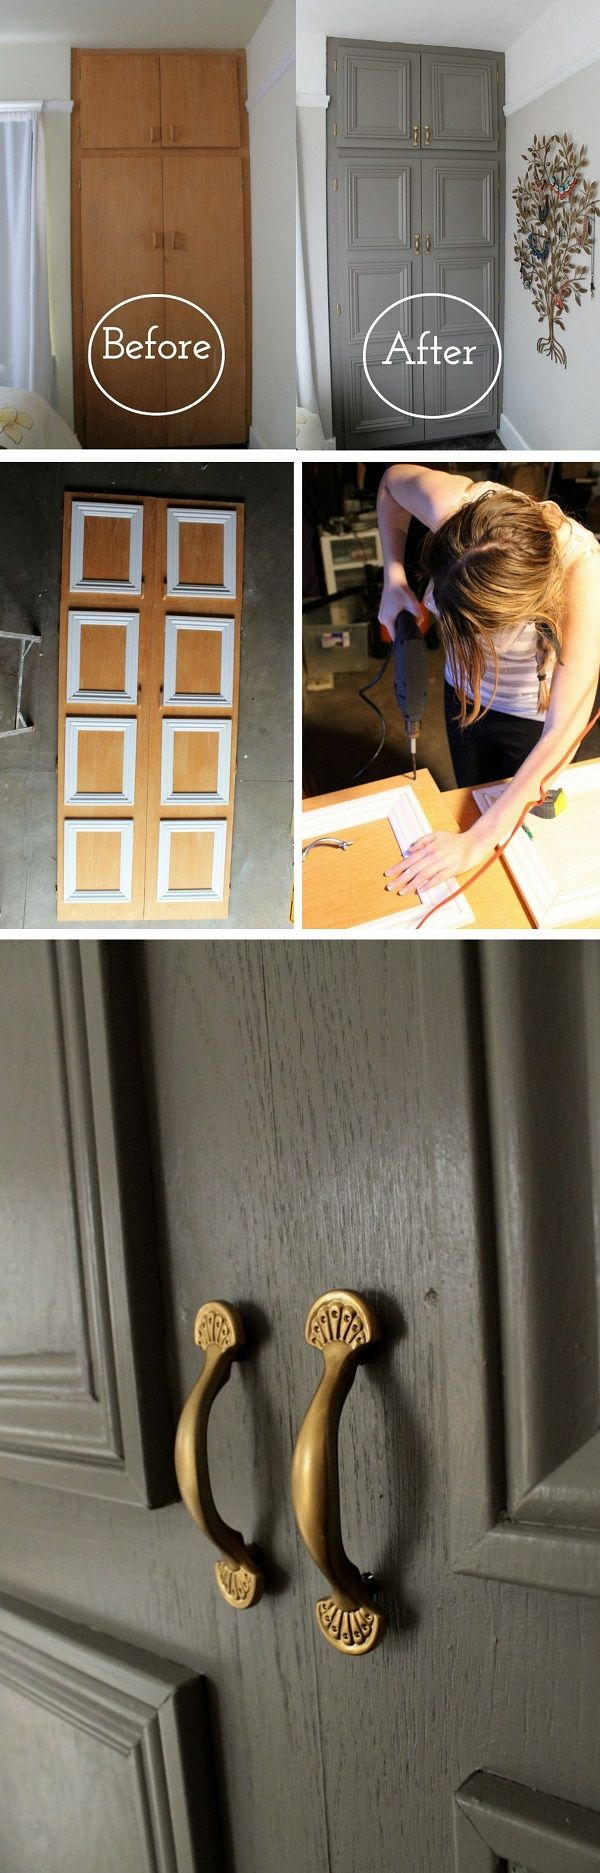 16 Easy DIY Door Projects for Amazing Decor on a Budget